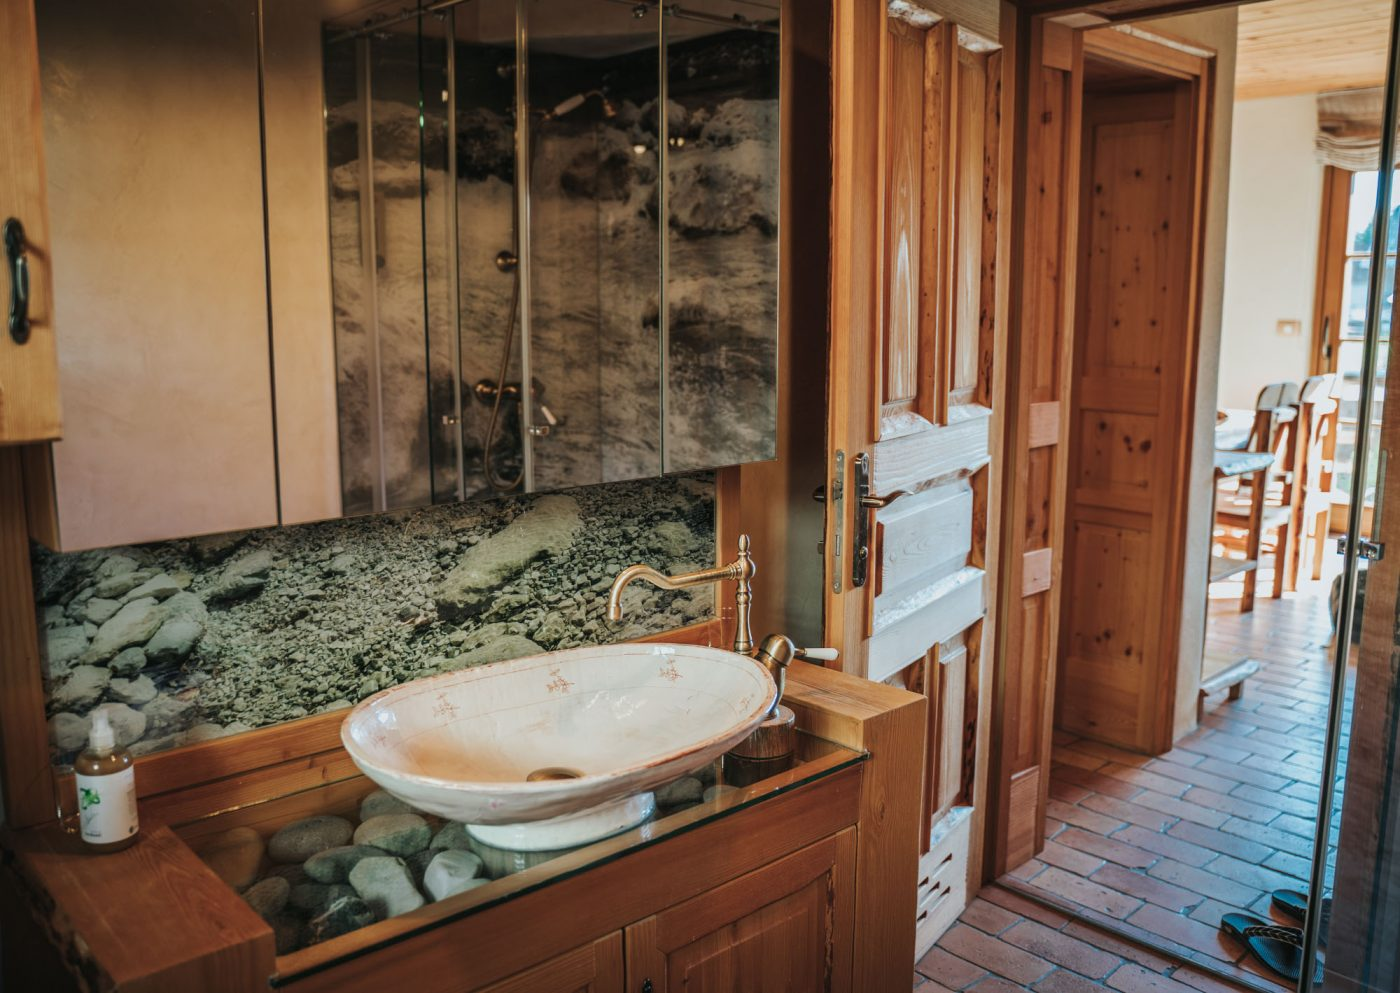 best eco hotels in Slovenia: Bathroom at the Trnuja Estate apartment